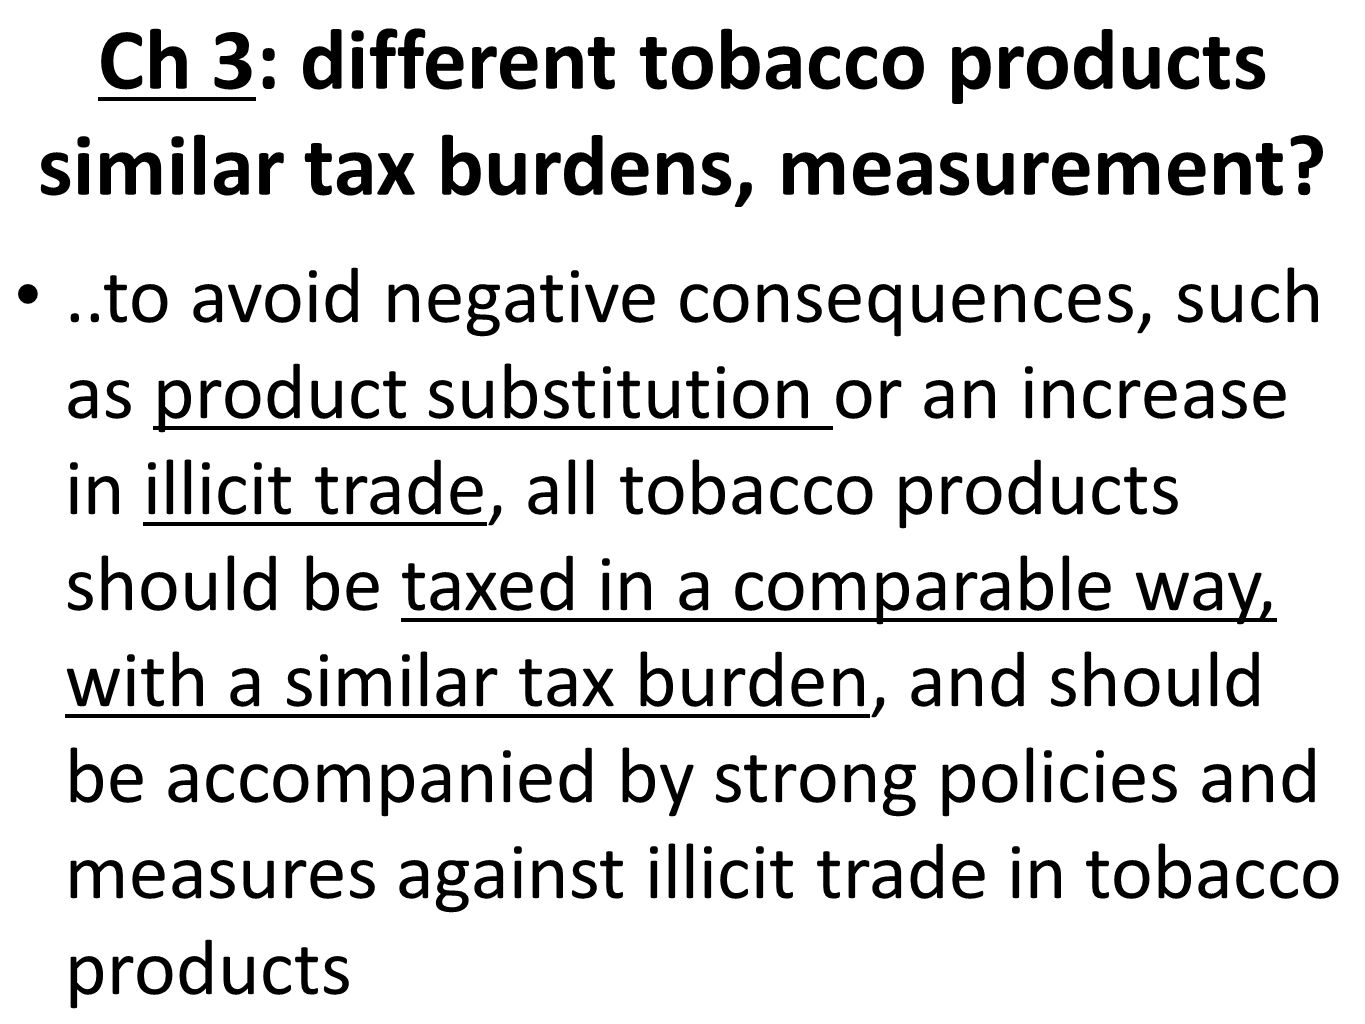 Ch 3: different tobacco products similar tax burdens, measurement